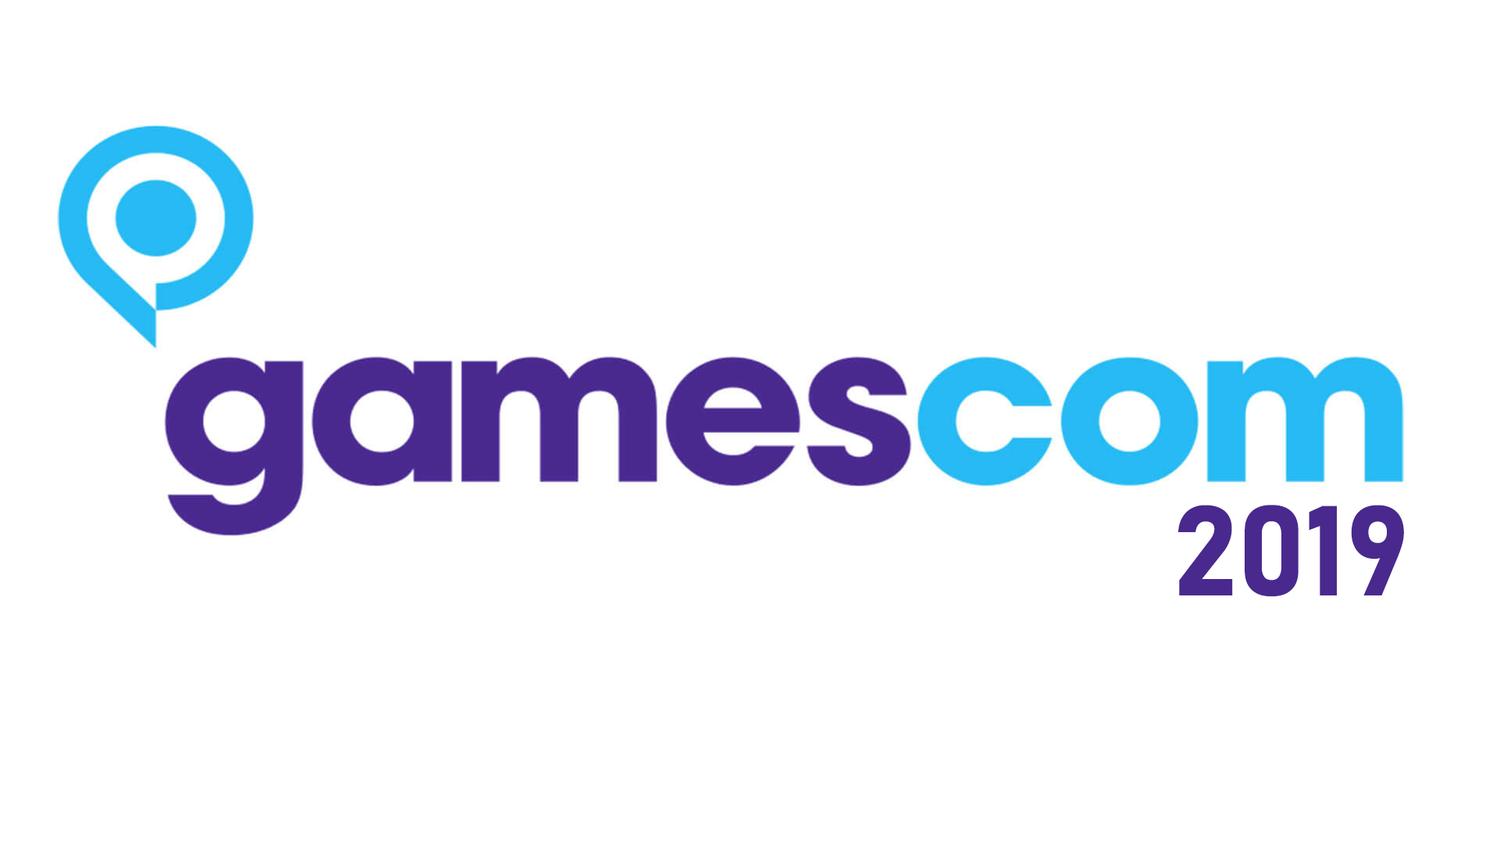 Gamescom 2019: Schedule, Dates, Times, Tickets, Games And Everything.